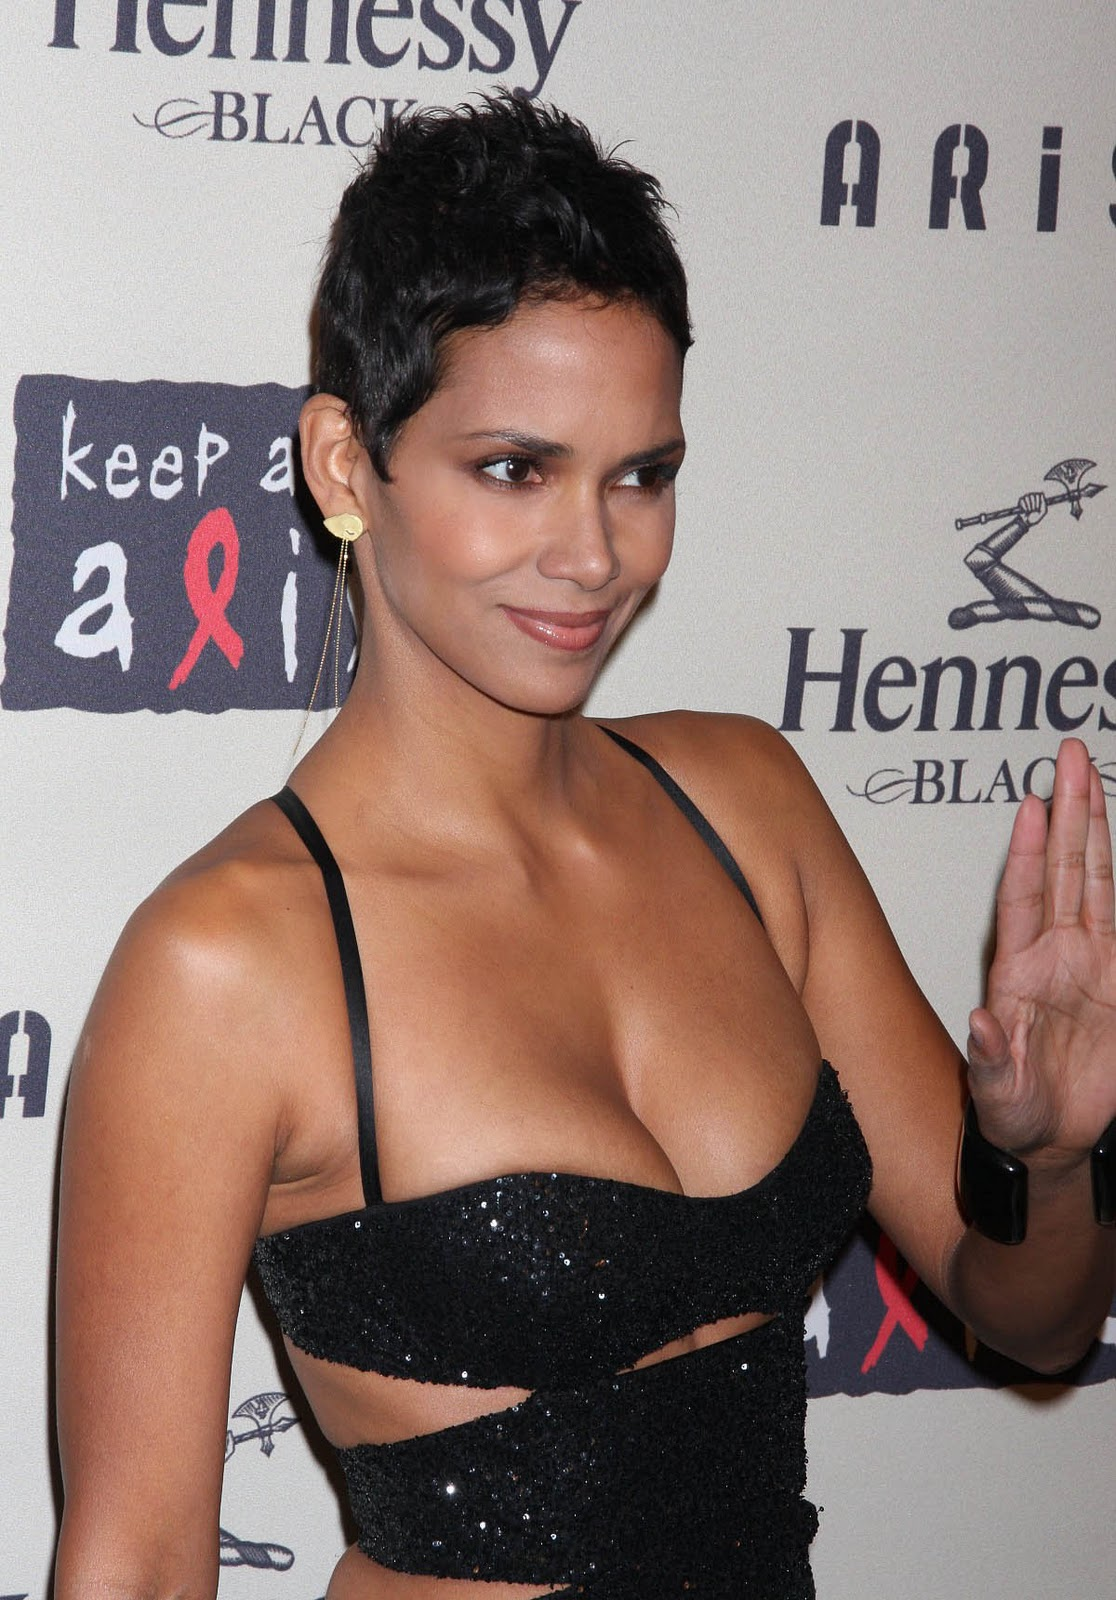 Halle berry the flintstones - 1 part 9